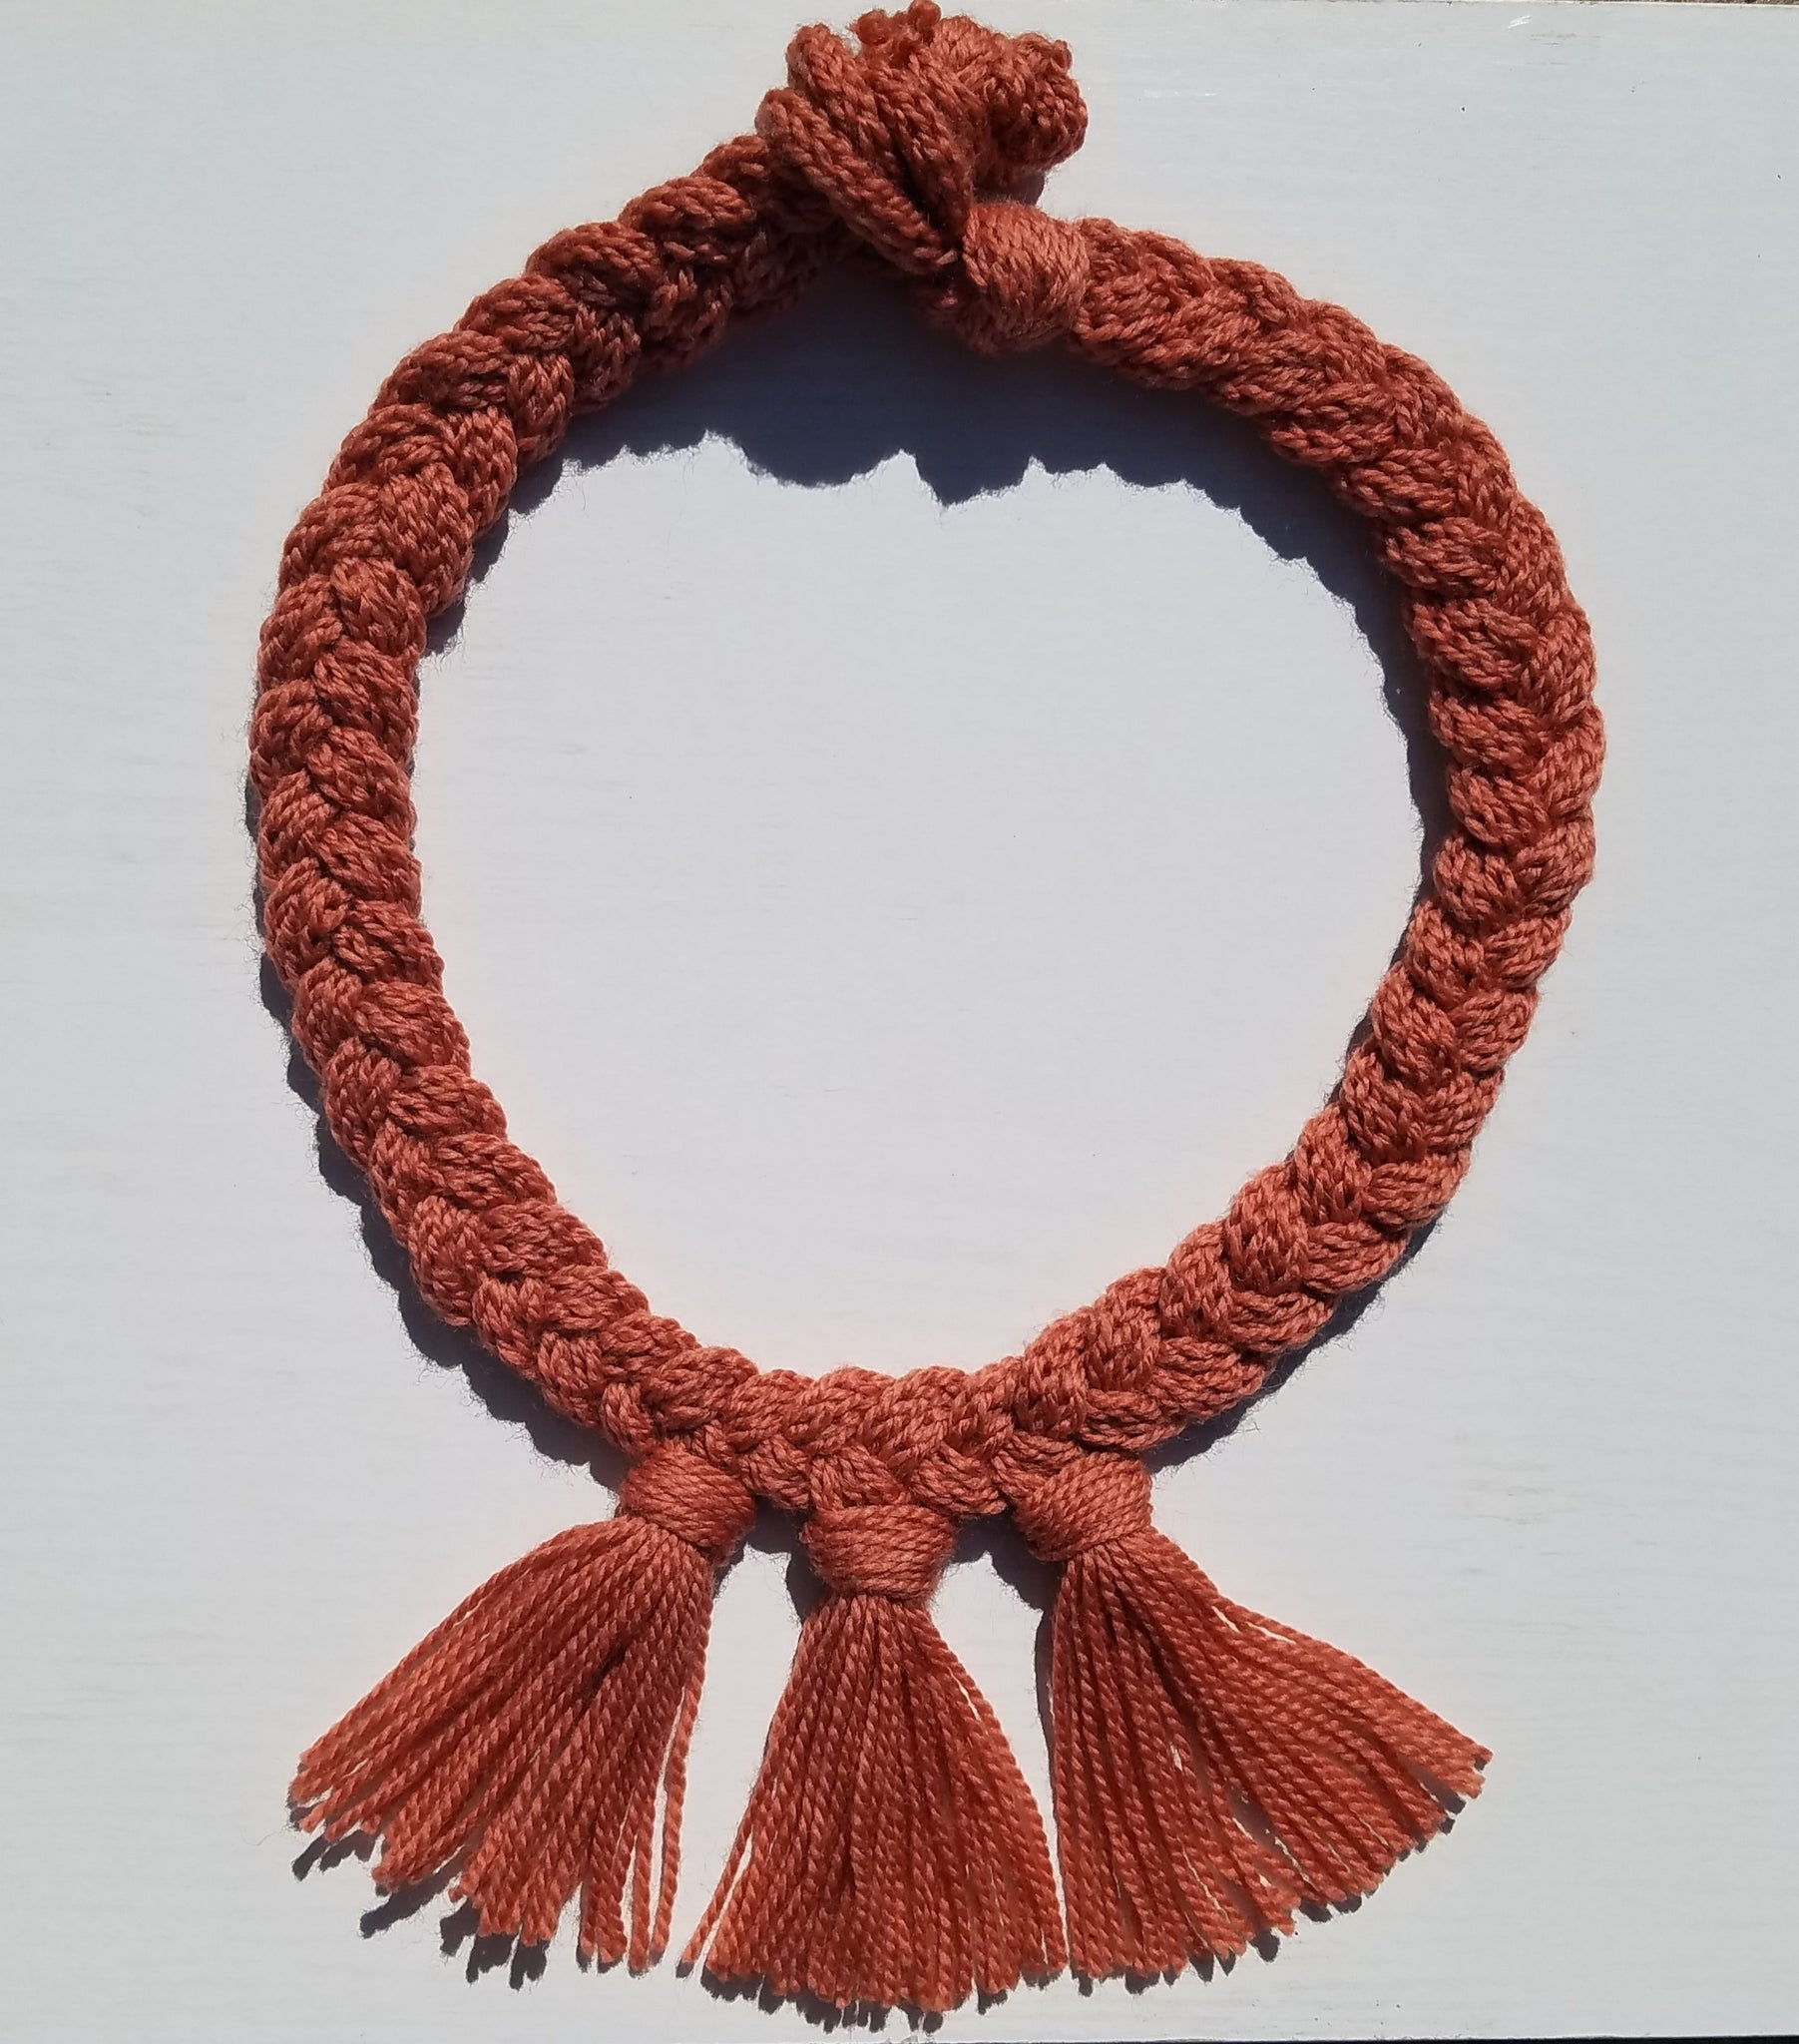 Braided Necklace *Limited Edition*